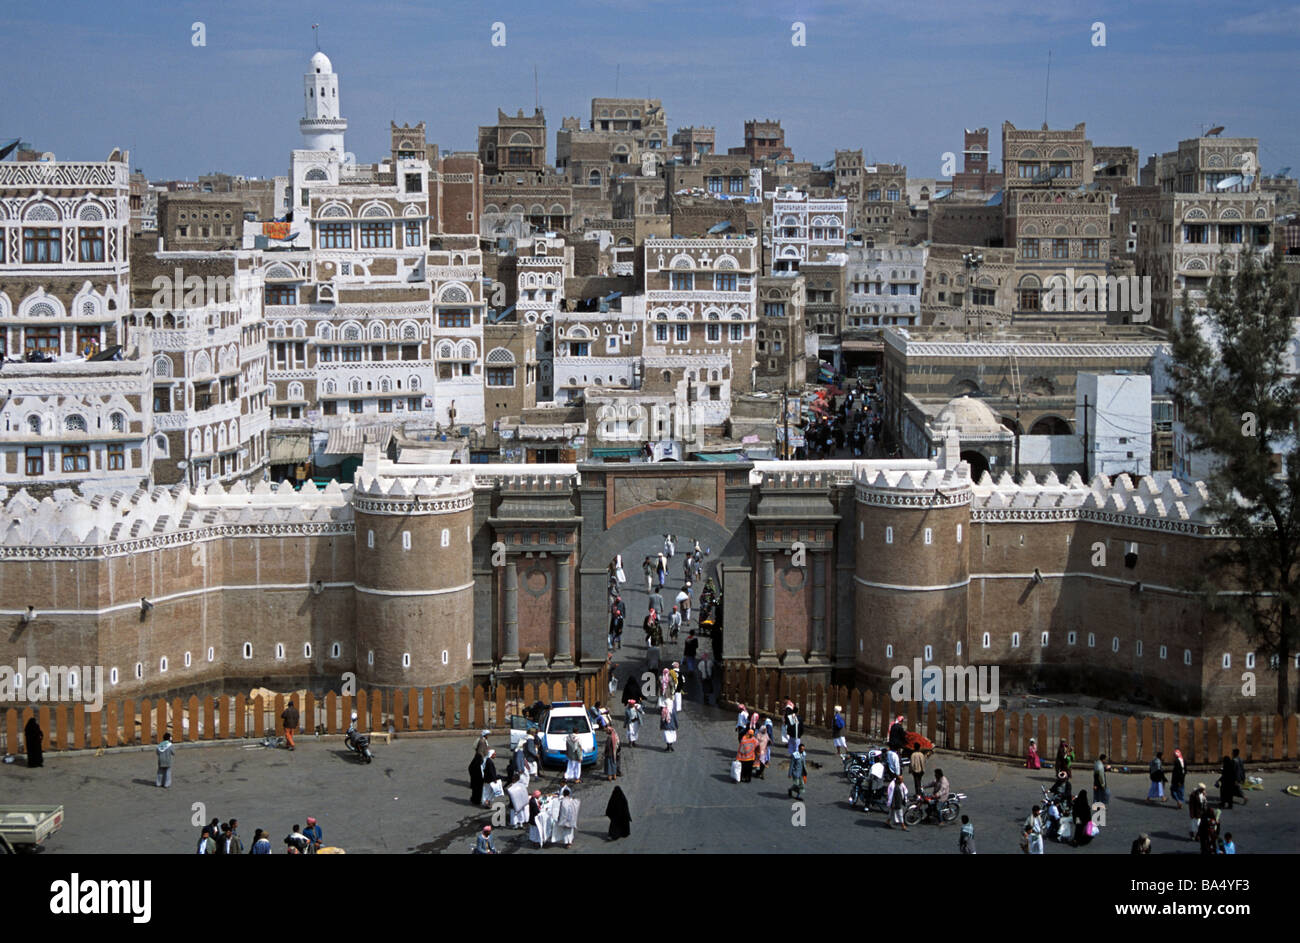 City View over Bab-al Yemen Town Gate & City Walls with Old Town & Tower Houses Beyond, Sana'a Sana - Stock Image